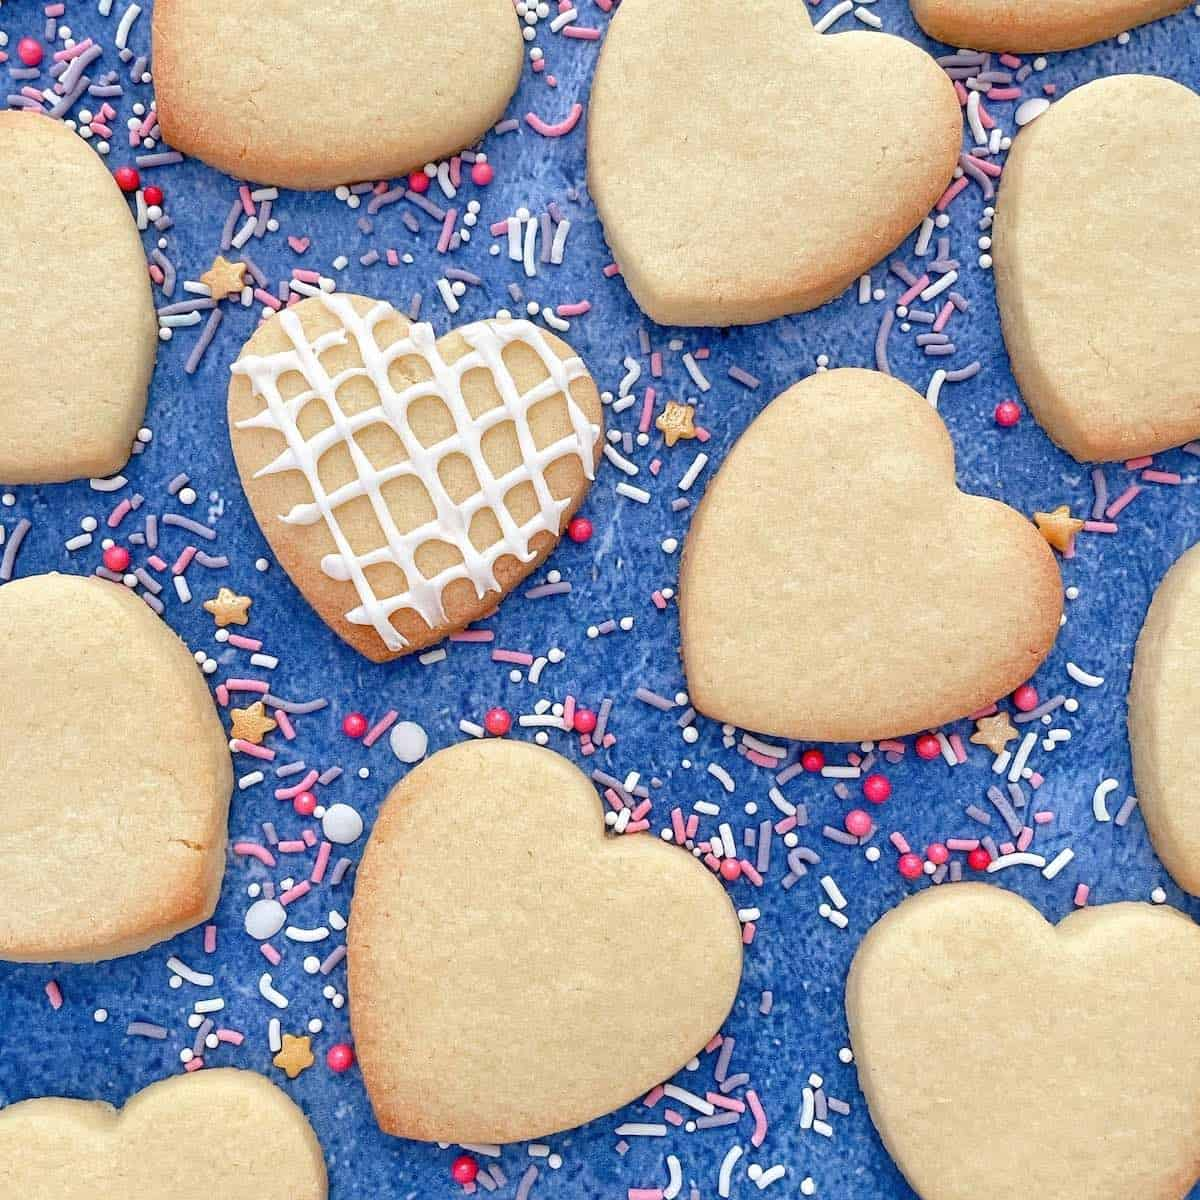 Thermomix Sugar Cookie Hearts with sprinkles